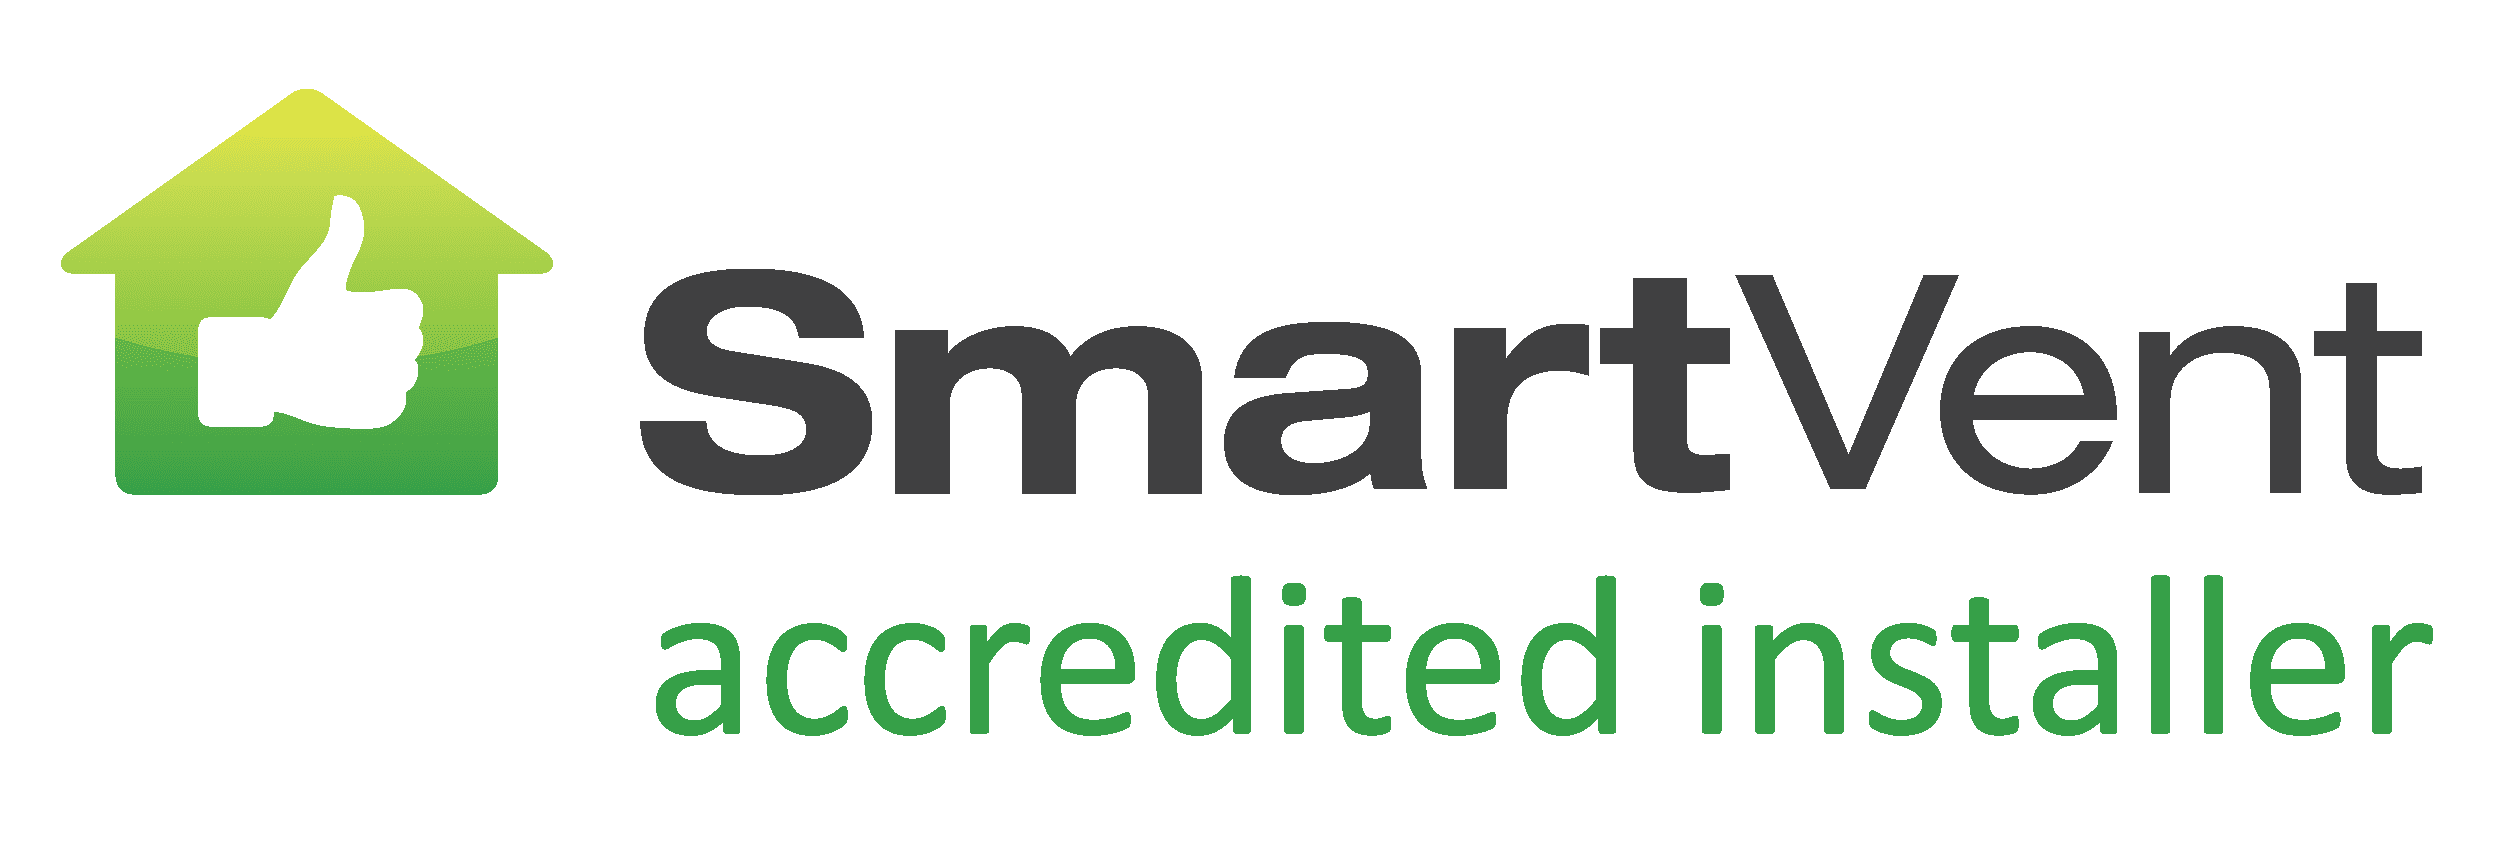 SmartVent Accredited Installer wellington electricians - SmartVent Accredied Installer Car Decal 1902 - MC Electrical | Home